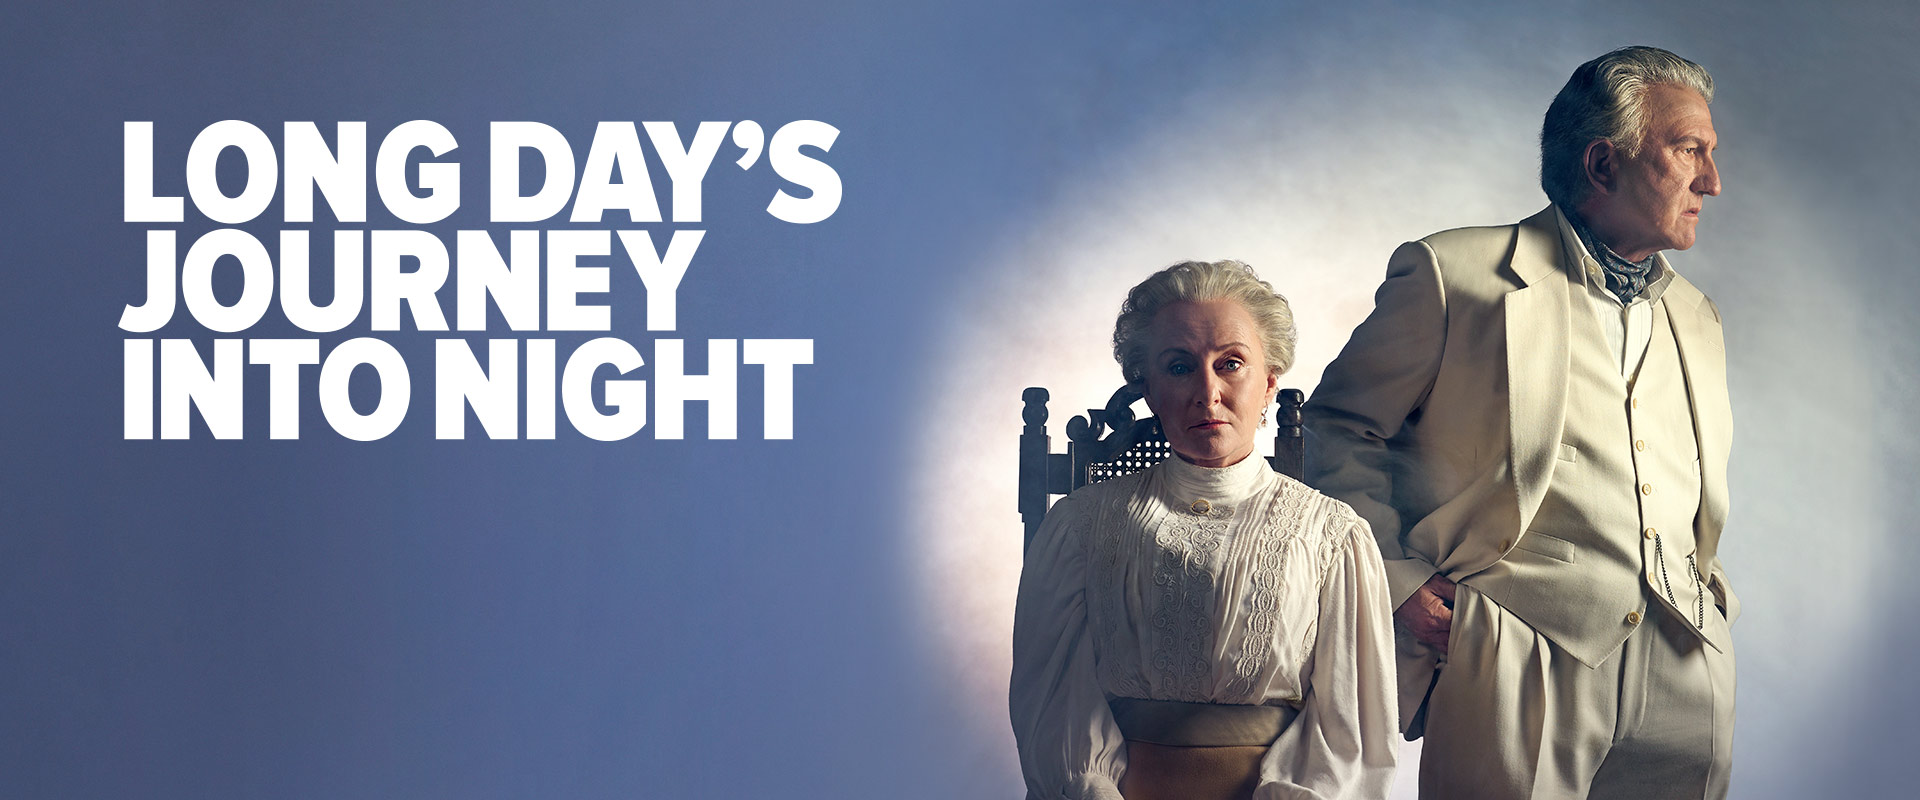 Publicity image from Long Day's Journey Into Night